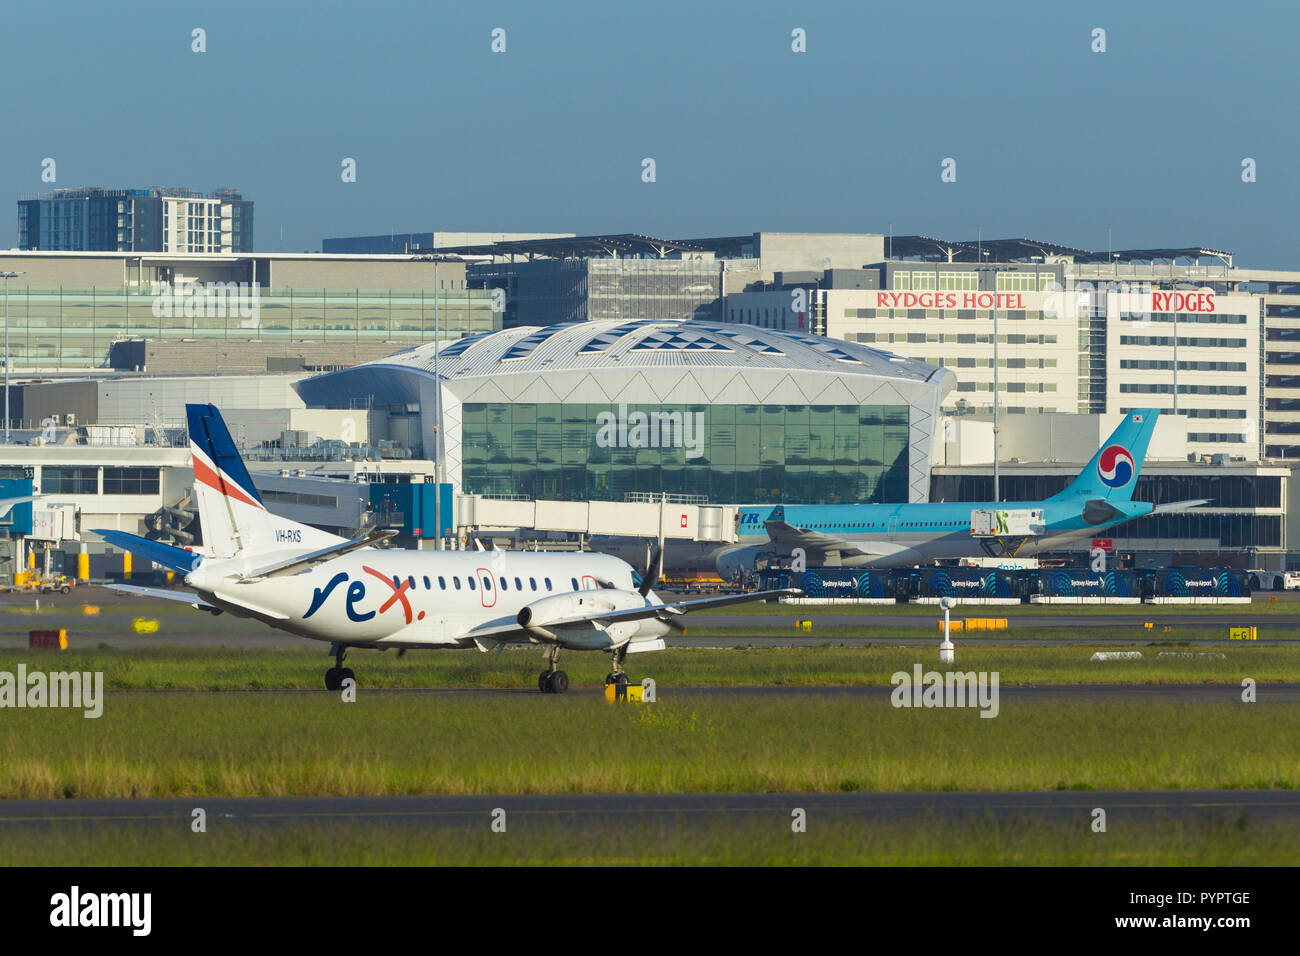 Detail from Sydney (Kingsford Smith) Airport in Sydney, Australia, looking towards the International Terminal on the western side of the airport. Pictured: The Rex VH-RXS (Regional Express) aircraft taxying. - Stock Image